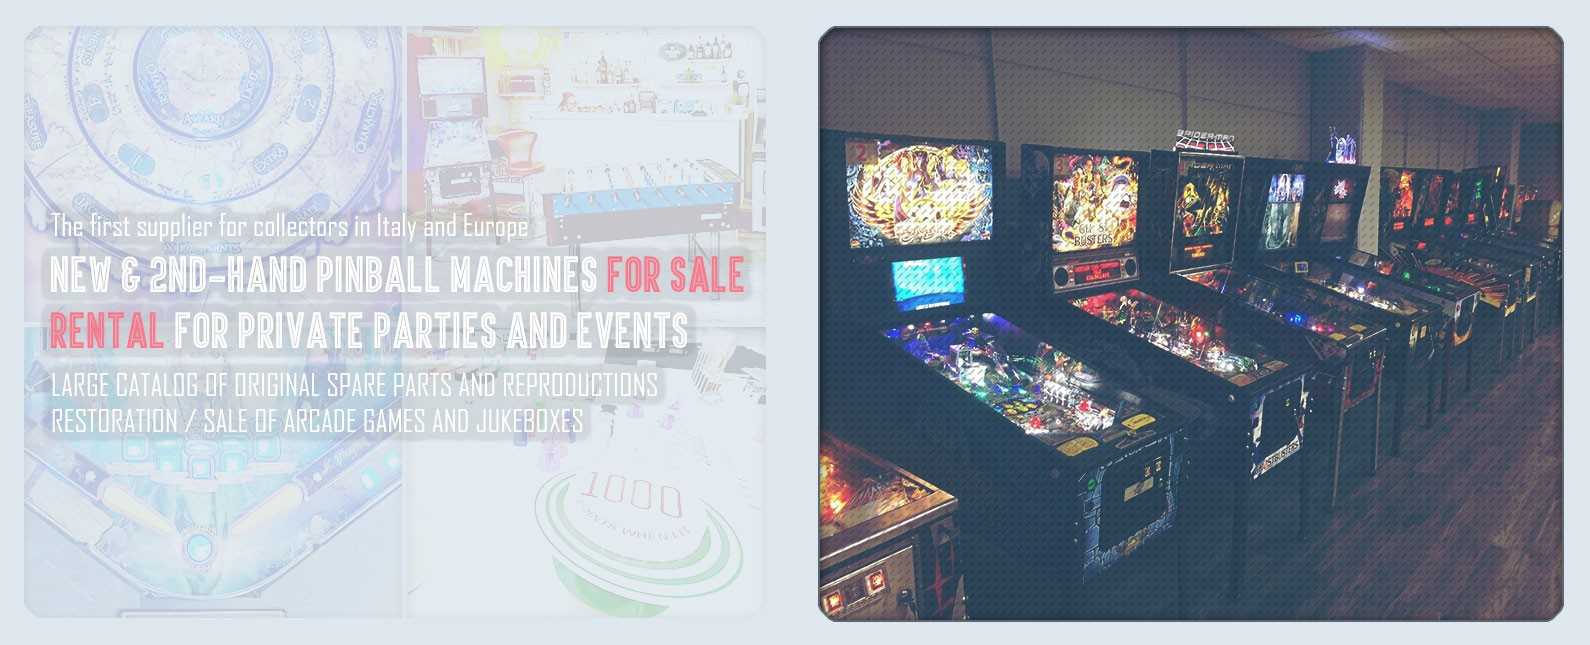 Welcome to Double Pinball E-store!